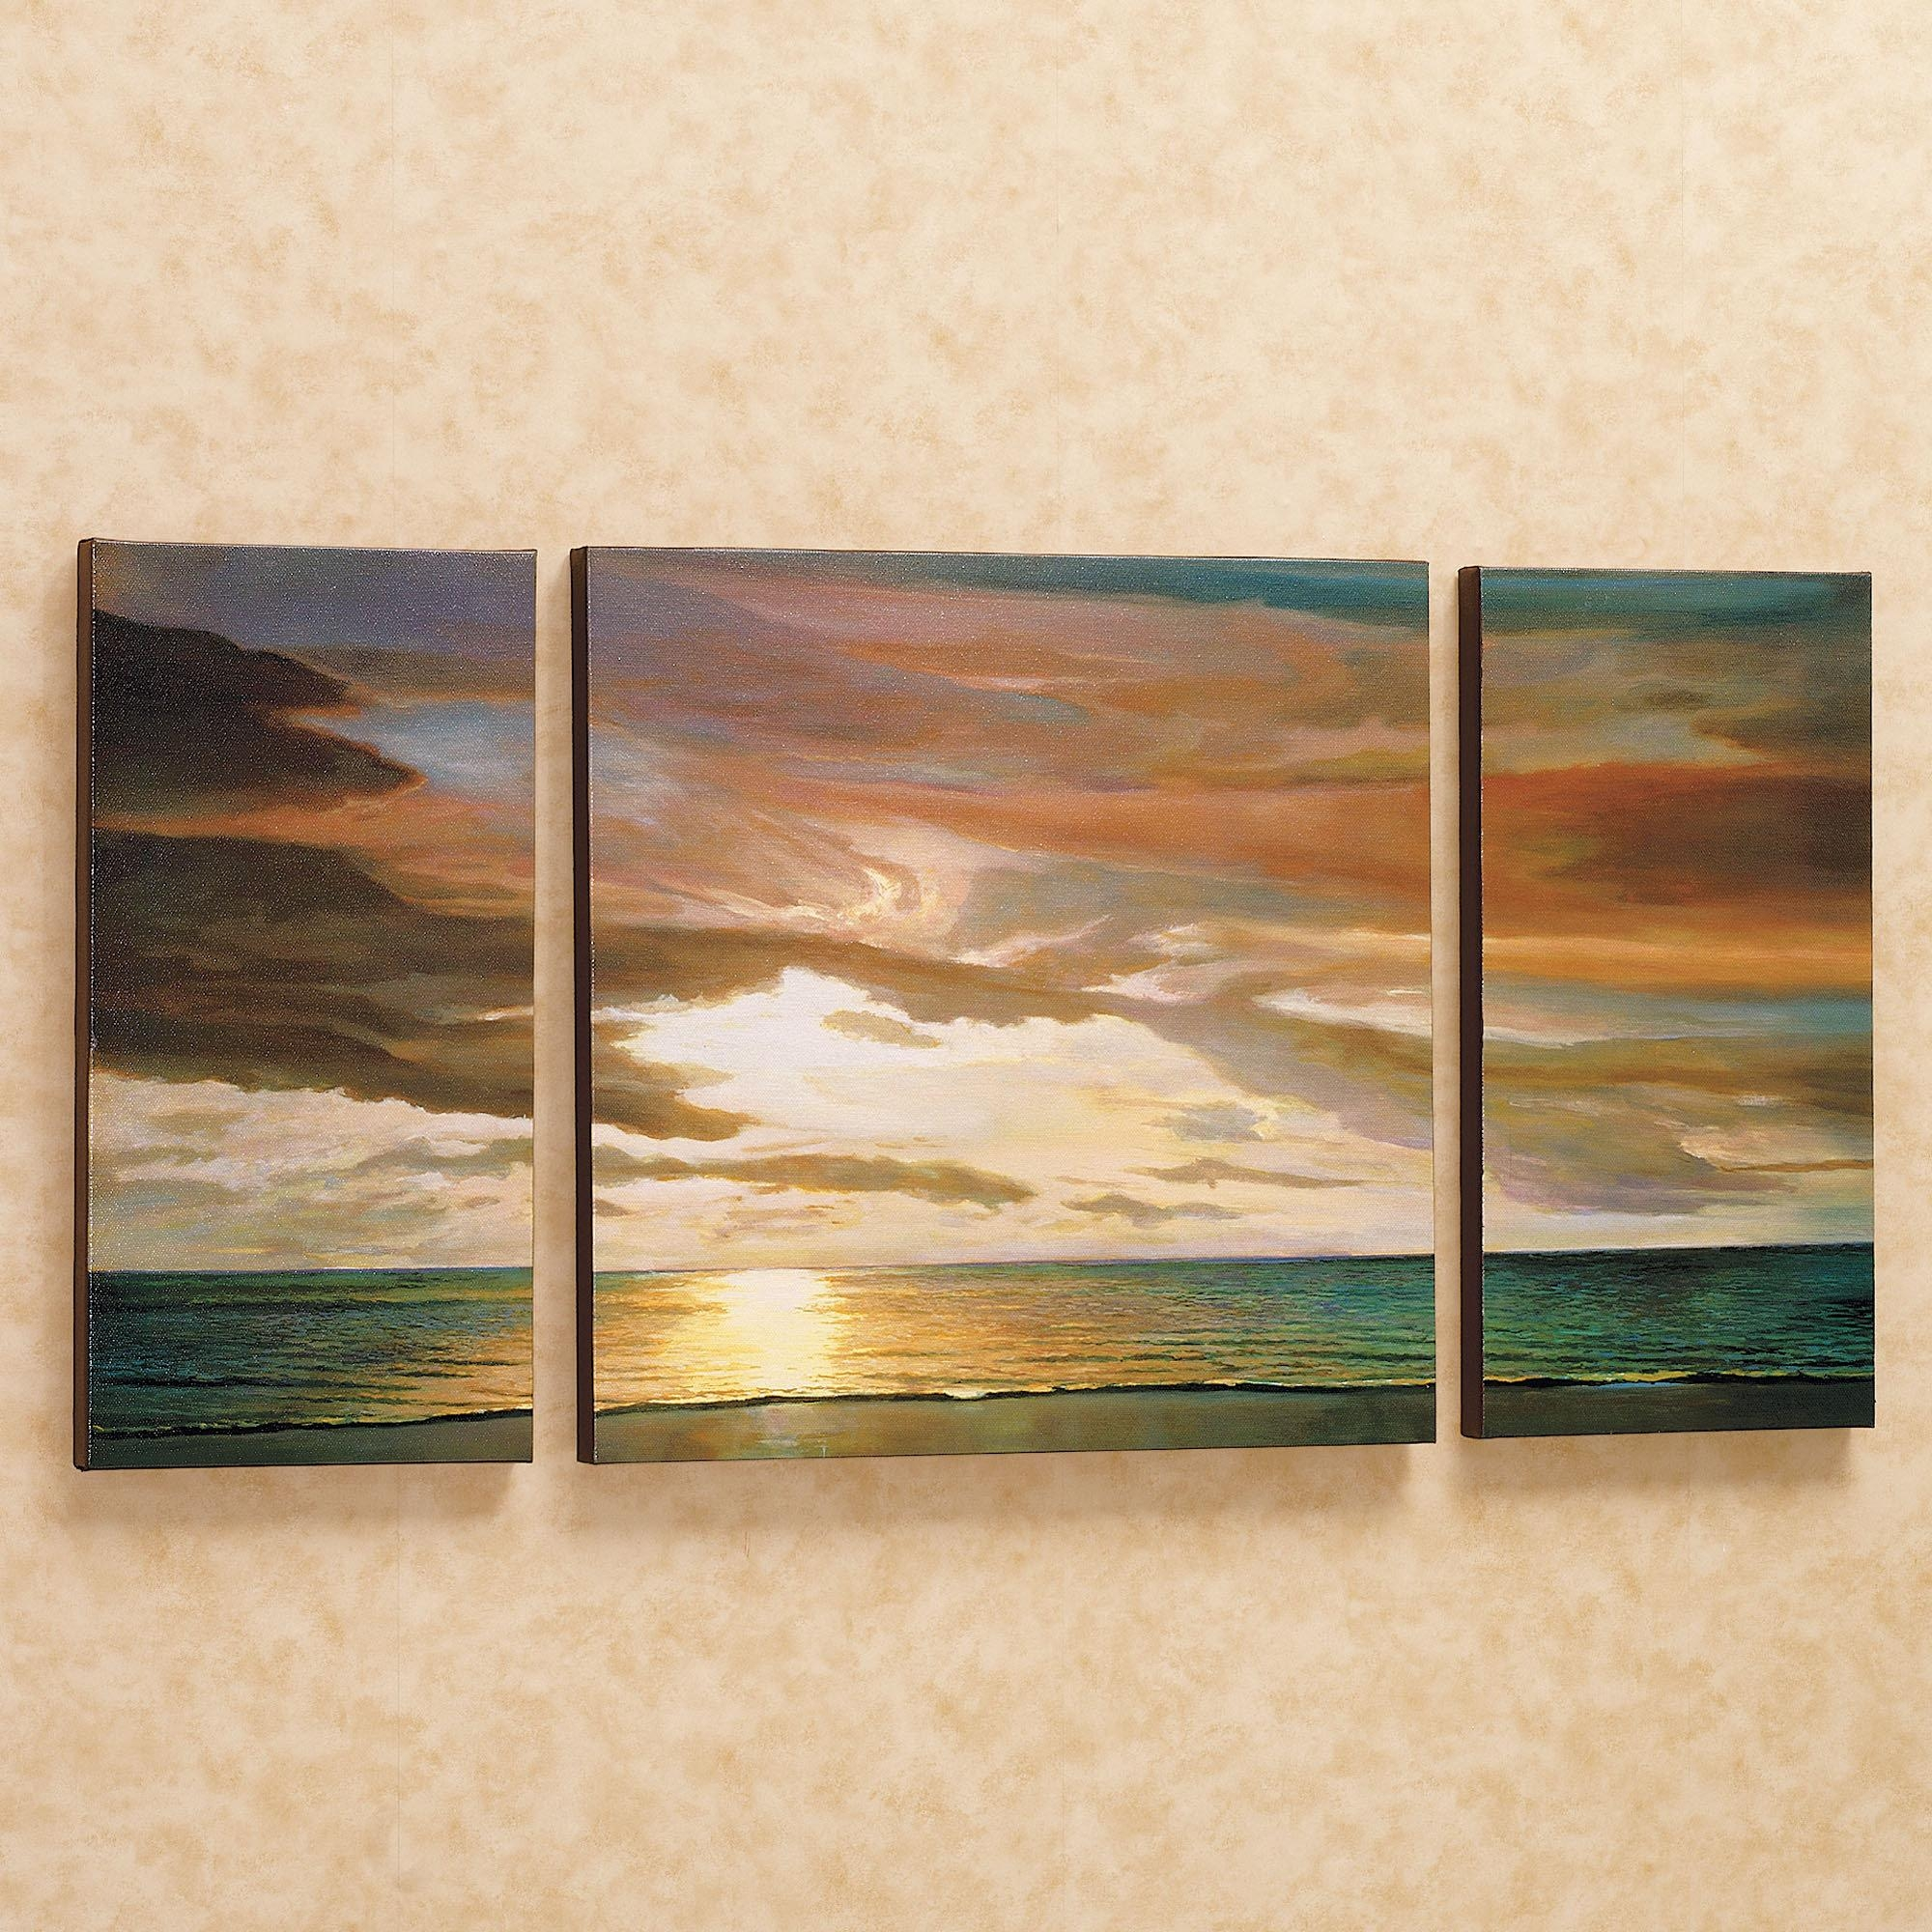 Wall Art Designs: Prints Canvas Triptych Wall Art Sale Large Metal For Triptych Art For Sale (View 10 of 20)